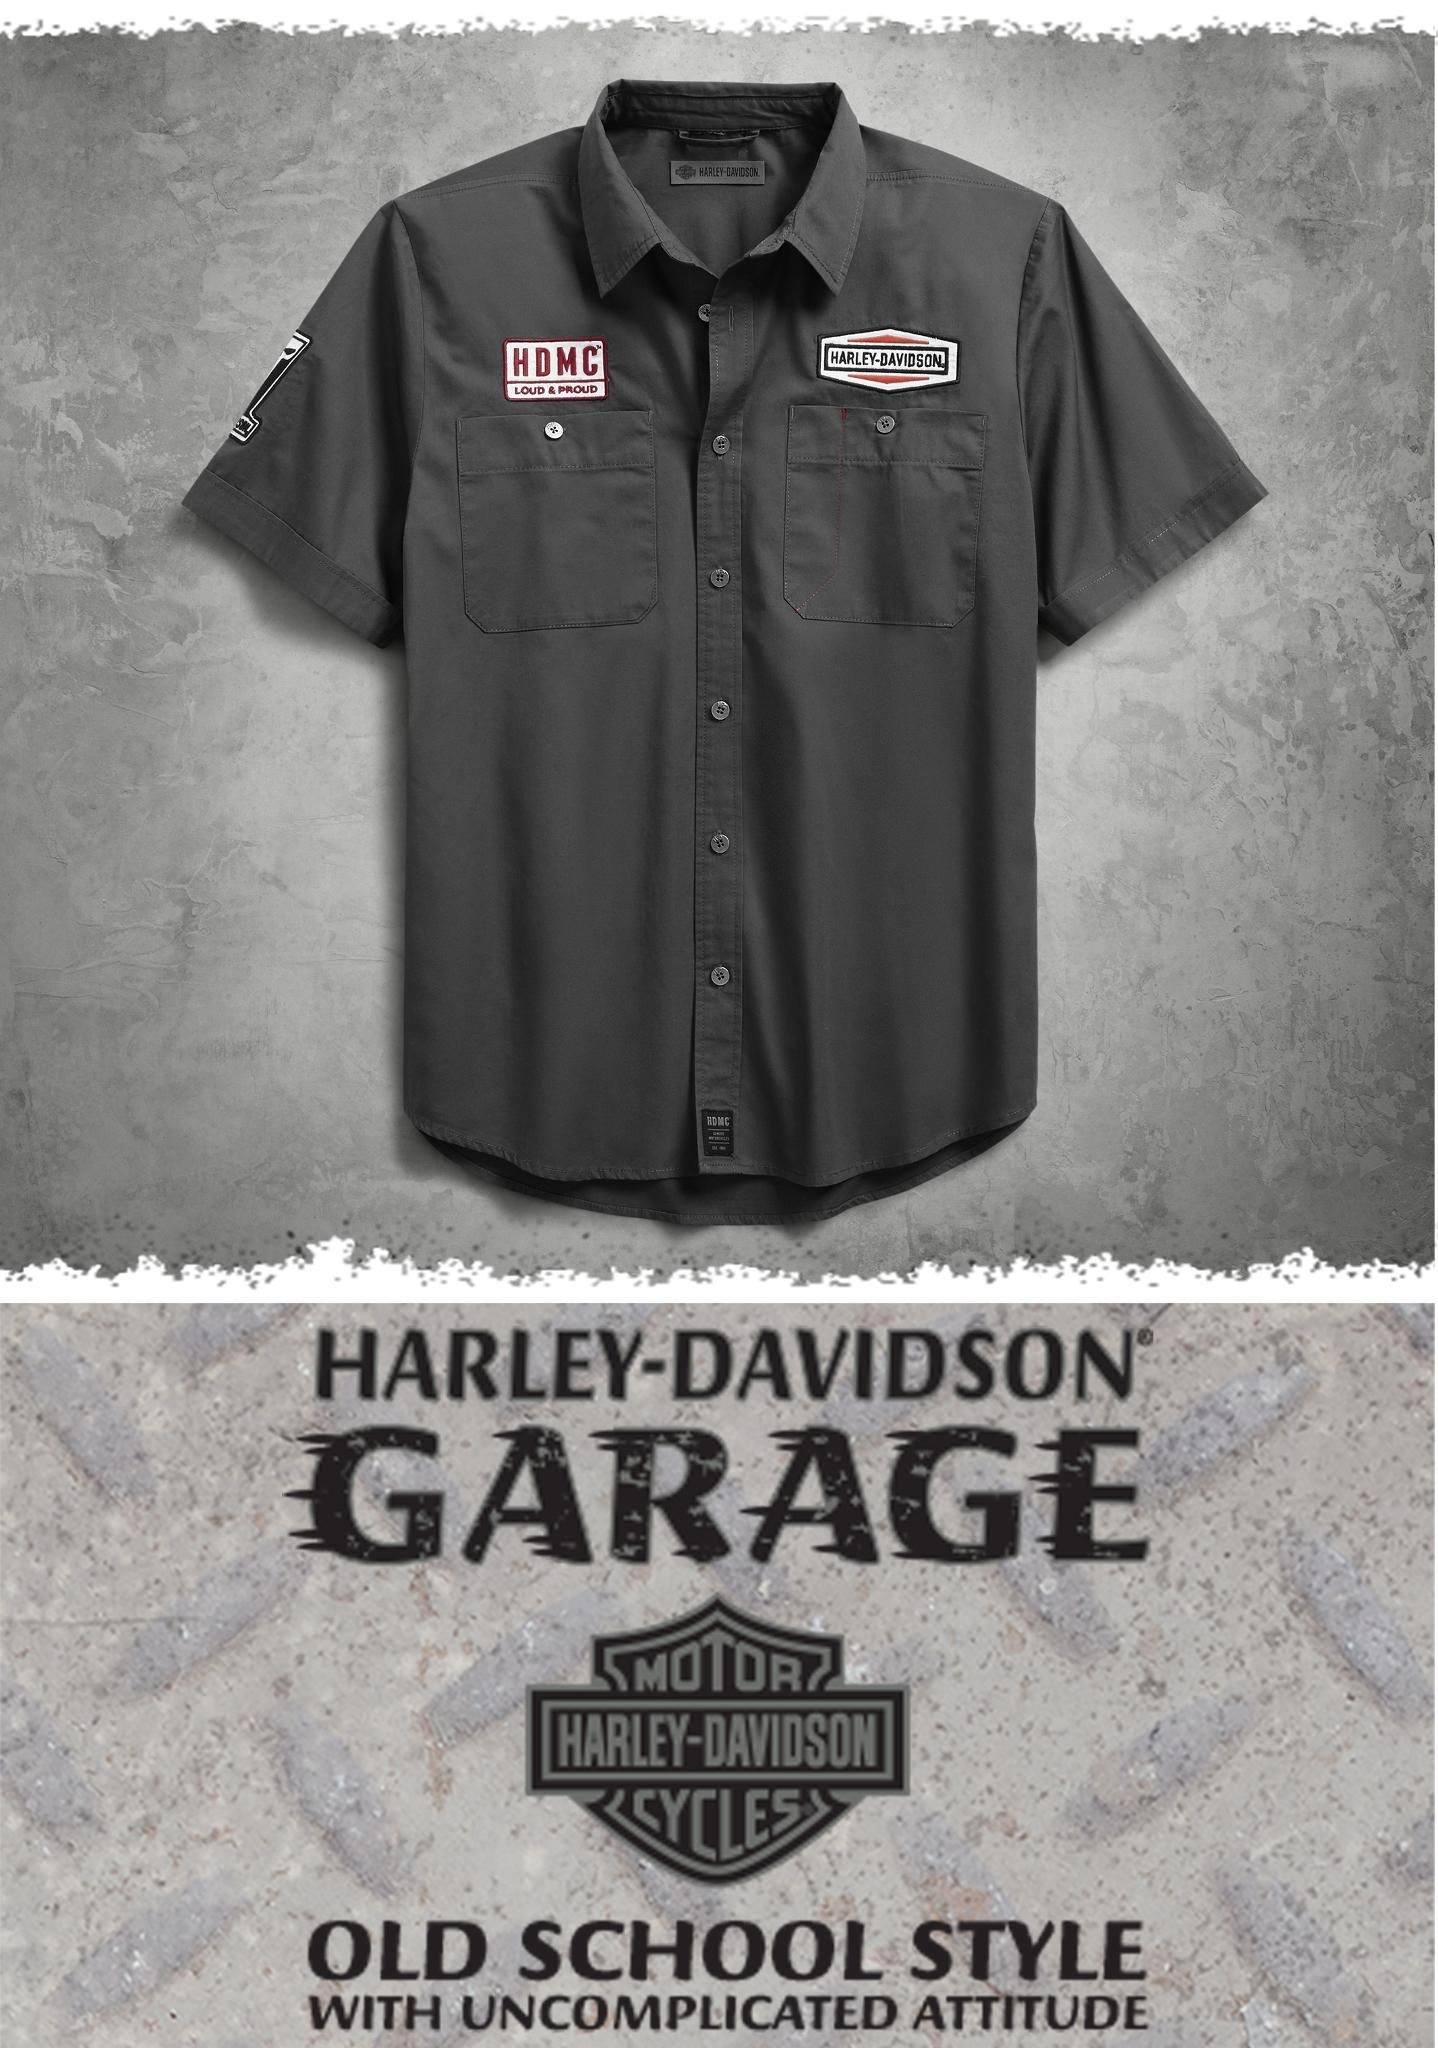 UESEU Personalized Harley Davidson Garage Short Sleeve Cotton Casual Polo Shirt T-Shirts for Man